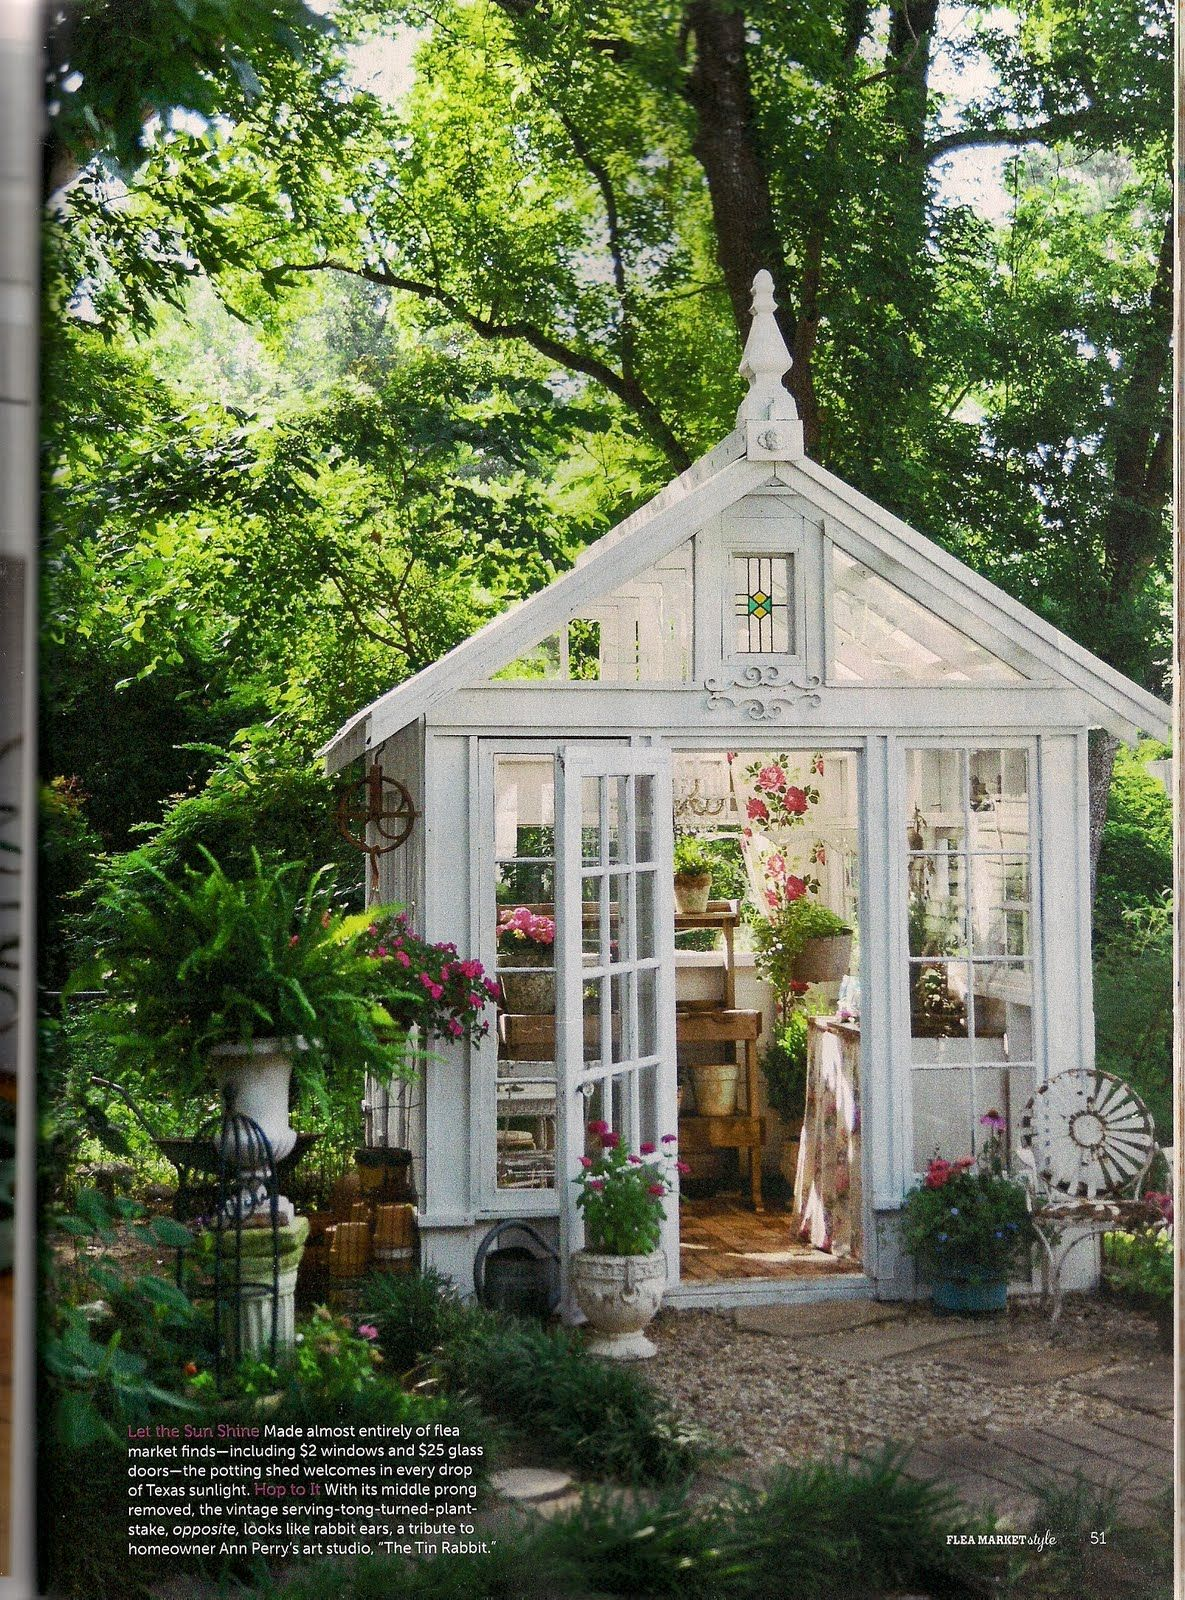 10 Inspiring DIY Greenhouses: Make Your Own Garden Oasis | Pinterest on building a greenhouse with old windows, greenhouse from recycled materials, greenhouse from pallets, greenhouse from pvc pipe, greenhouse from shed, greenhouse windows for the home, building a greenhouse with storm windows, greenhouse windows for kitchen, greenhouse made out of windows,